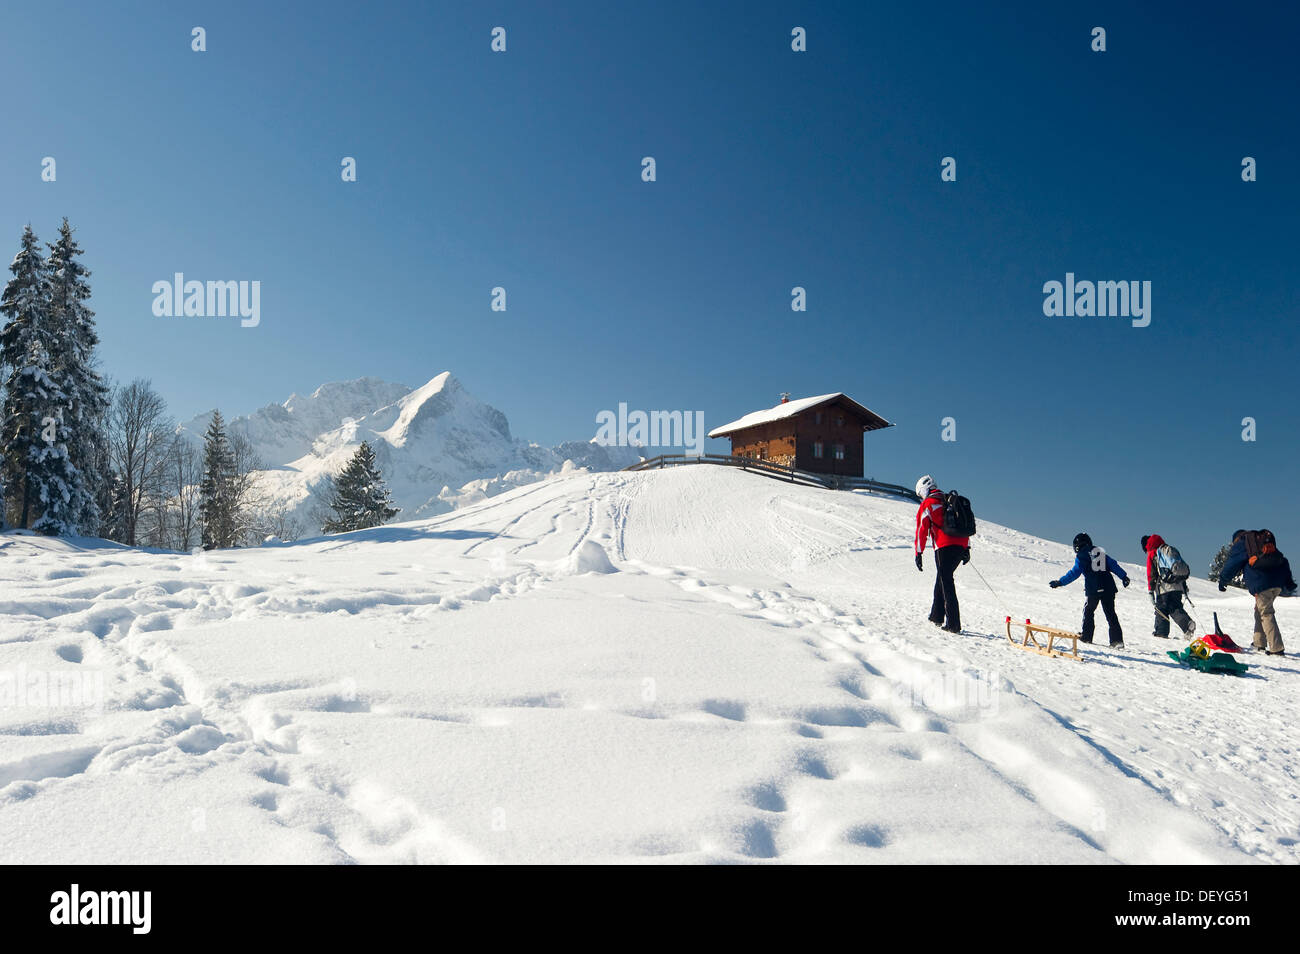 Sledgers and a wooden house on a snow-covered hill, Mt Alpspitze and Mt Zugspitze at back, Eckbauer, Garmisch-Partenkirchen Stock Photo